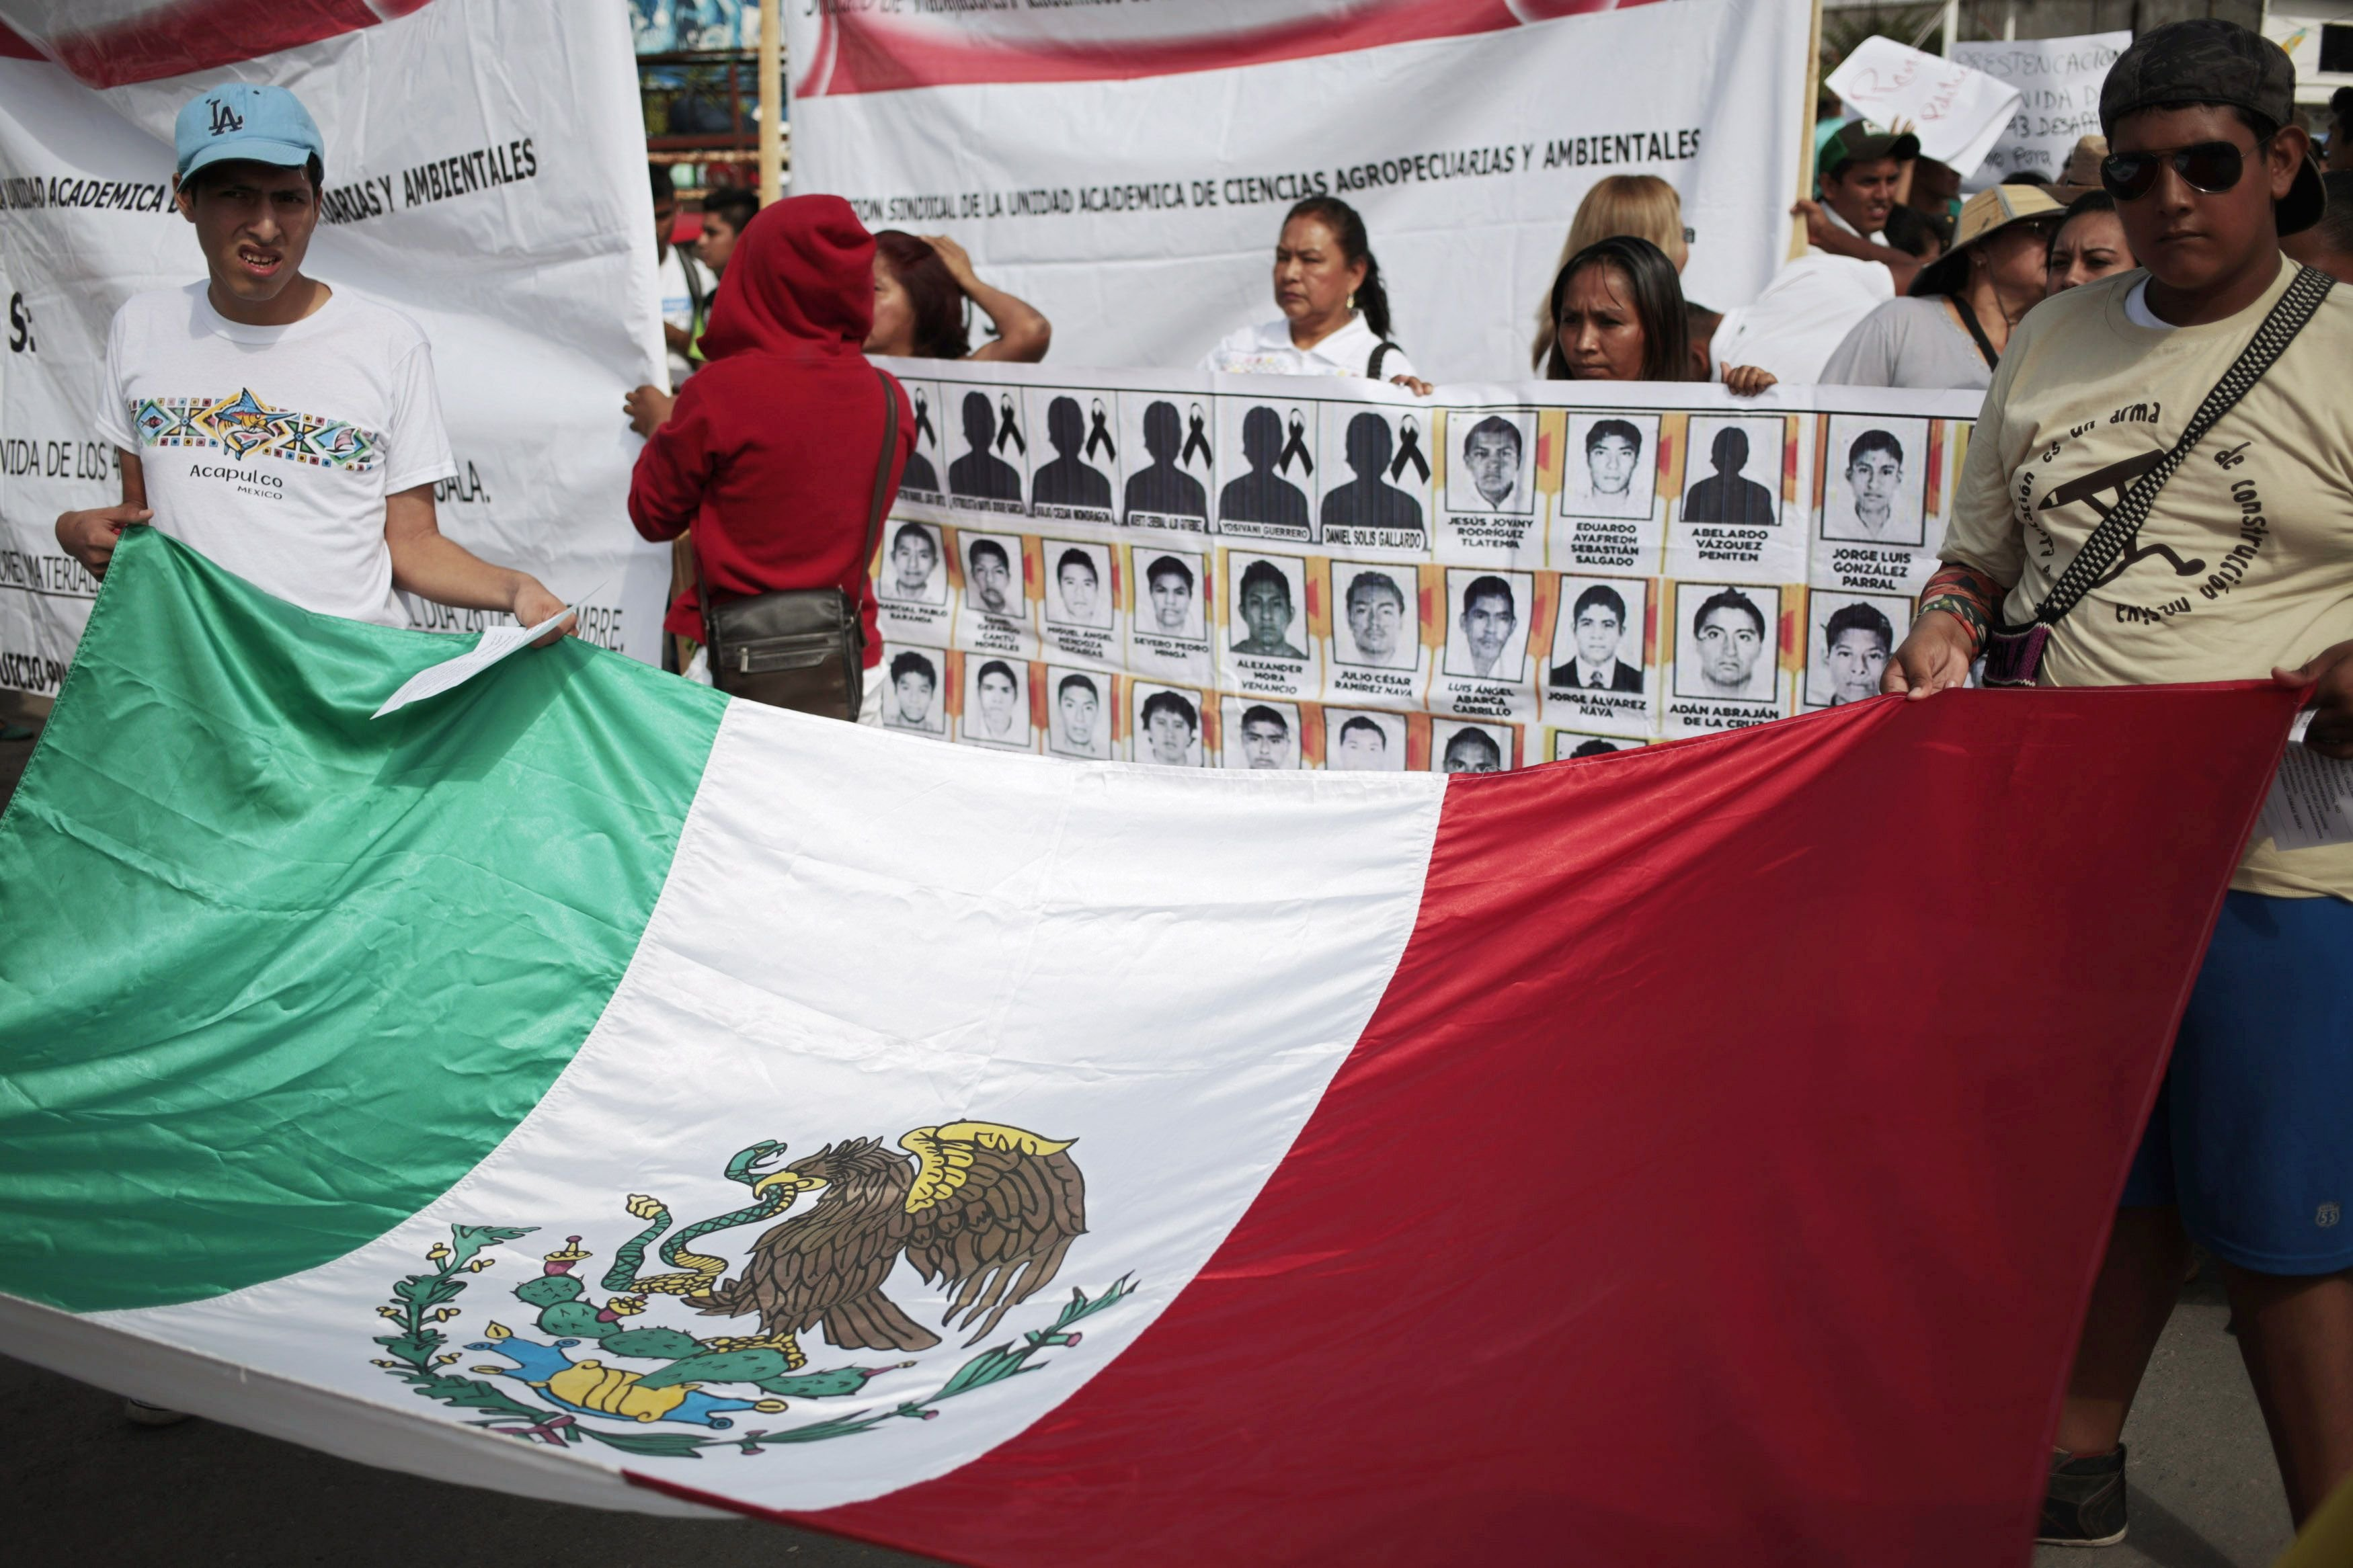 People hold a Mexican flag during a demonstration to demand information for the 43 missing students of the Ayotzinapa teachers' training college, in Iguala, the southern Mexican state of Guerrero on Oct. 22, 2014.